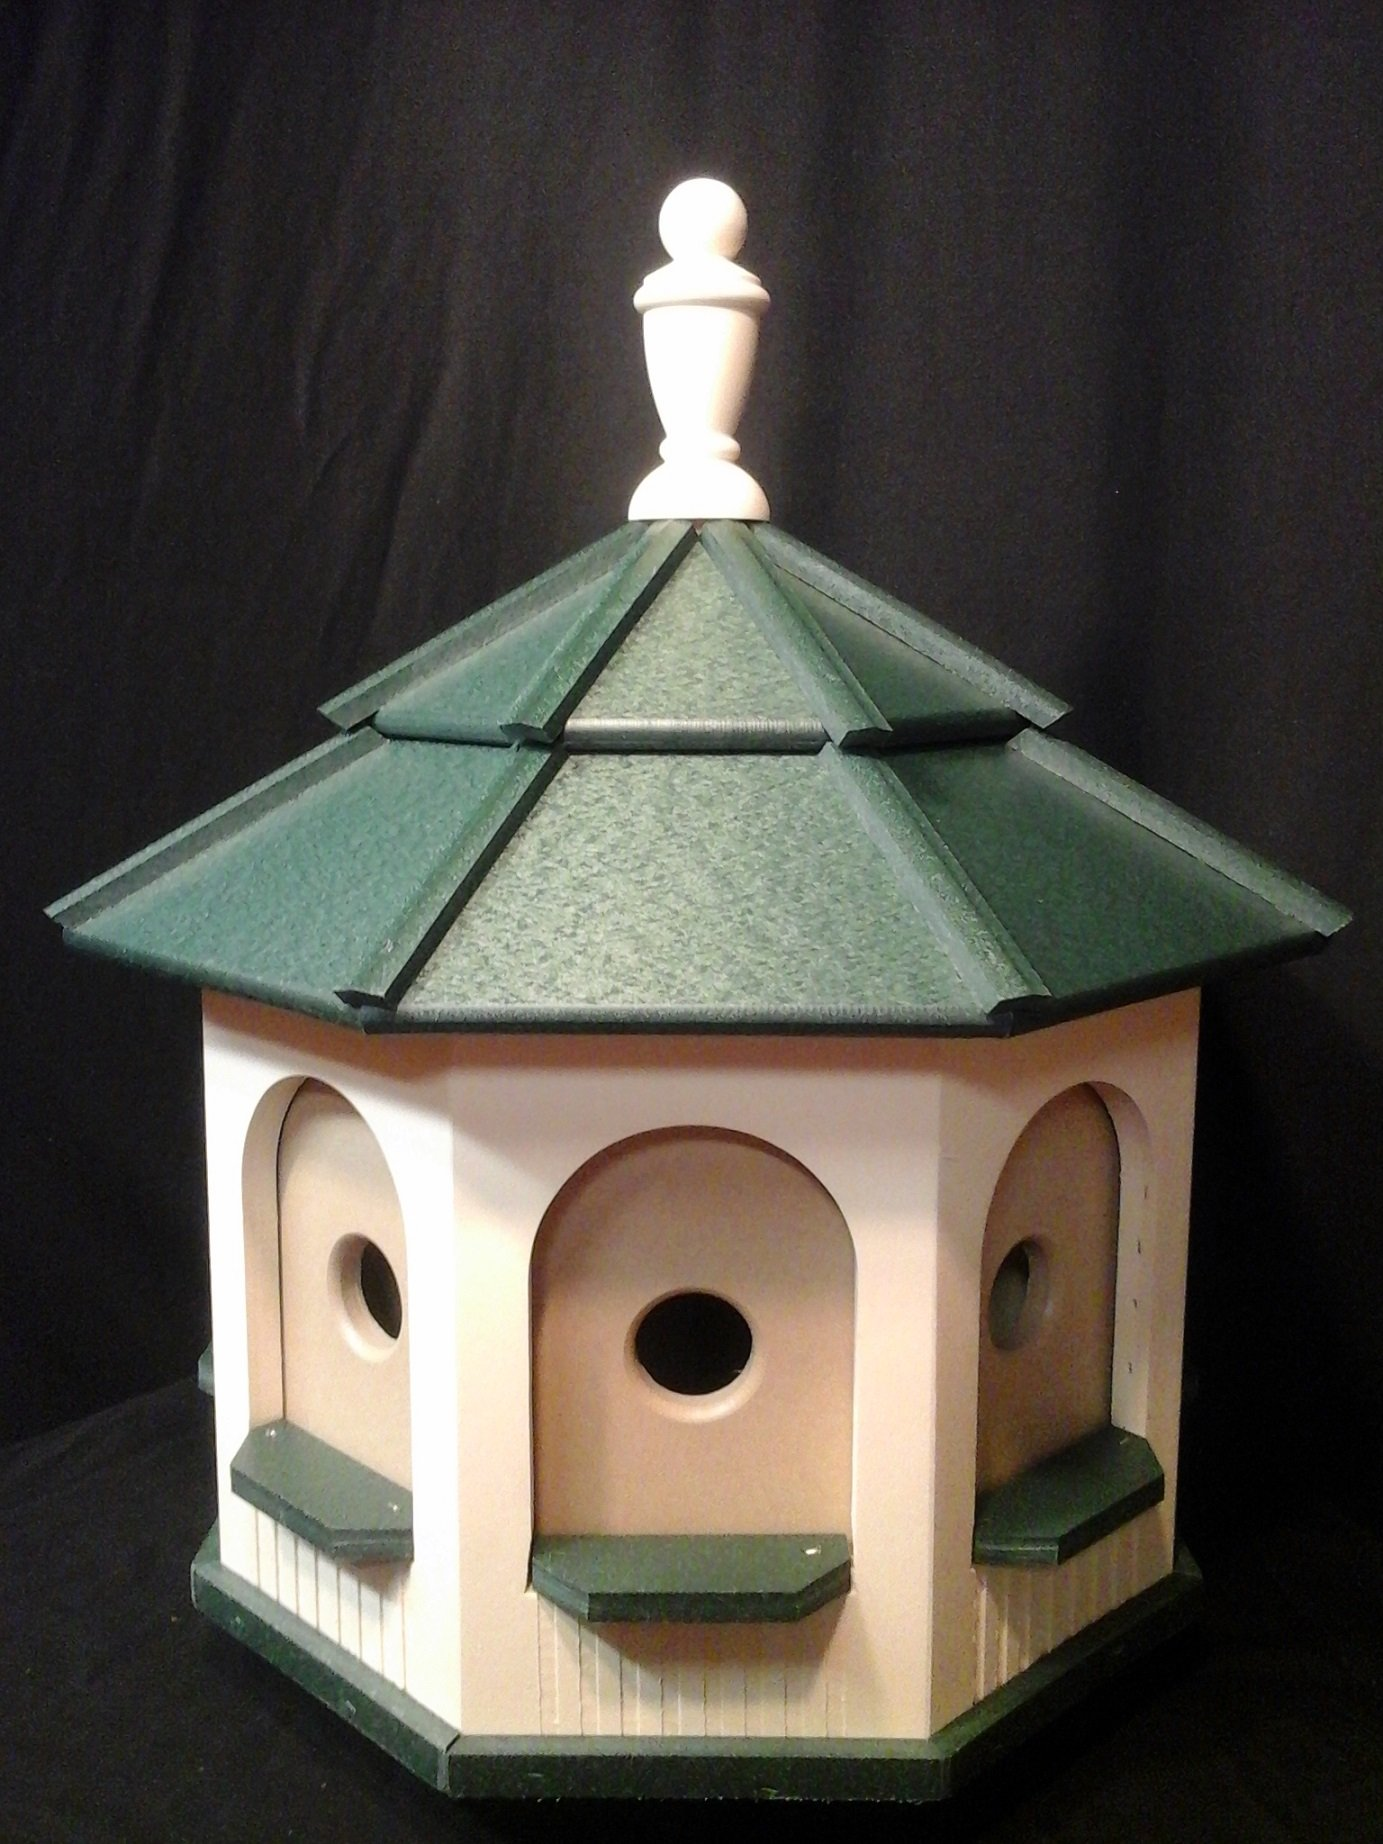 Large Poly Handcrafted Handmade Homemade Birdhouse Garden Ivory & Green Roof